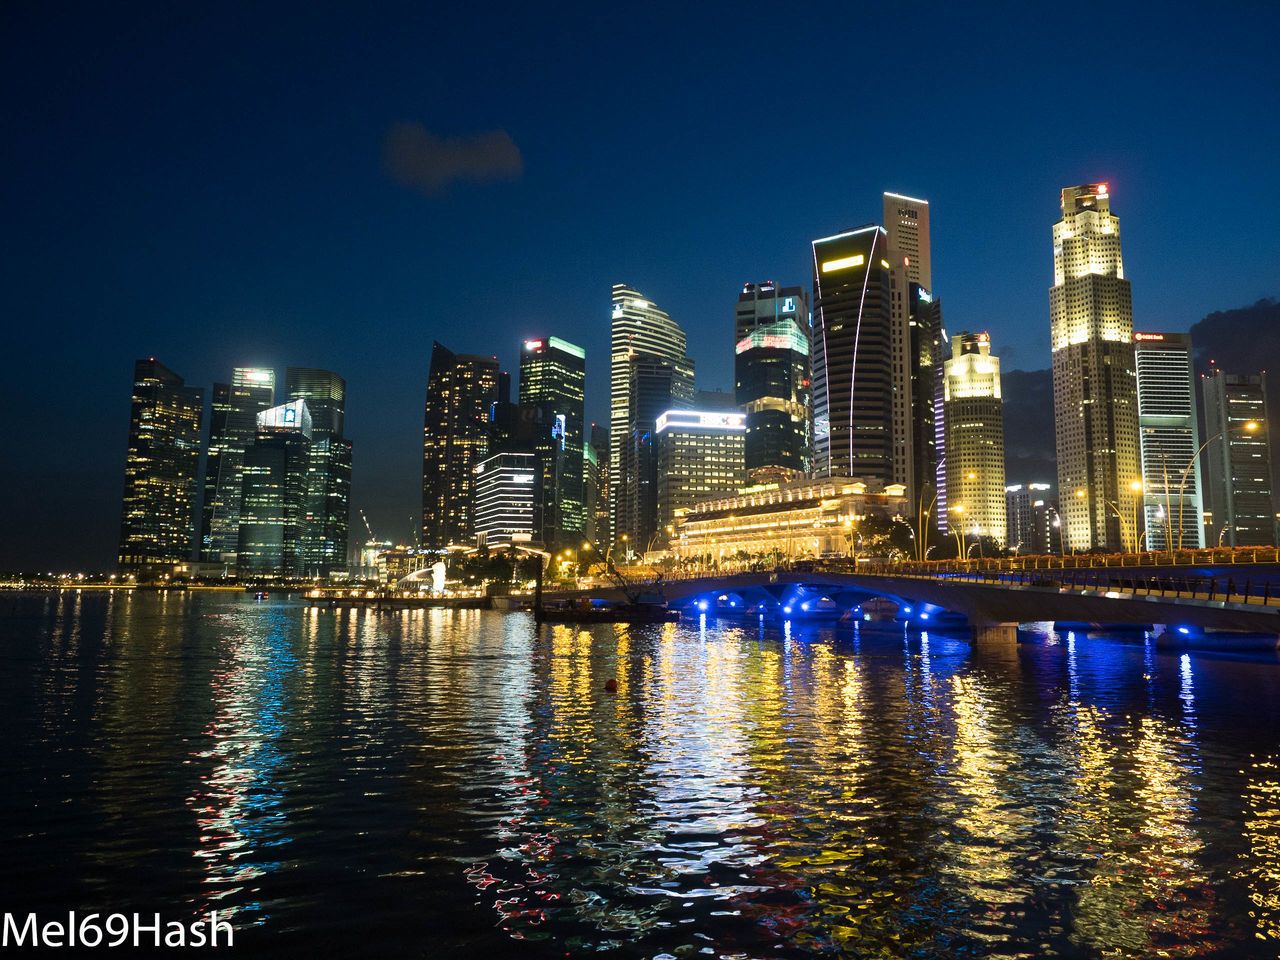 night, illuminated, building exterior, architecture, waterfront, skyscraper, reflection, city, water, built structure, cityscape, river, urban skyline, travel destinations, outdoors, modern, sky, no people, blue